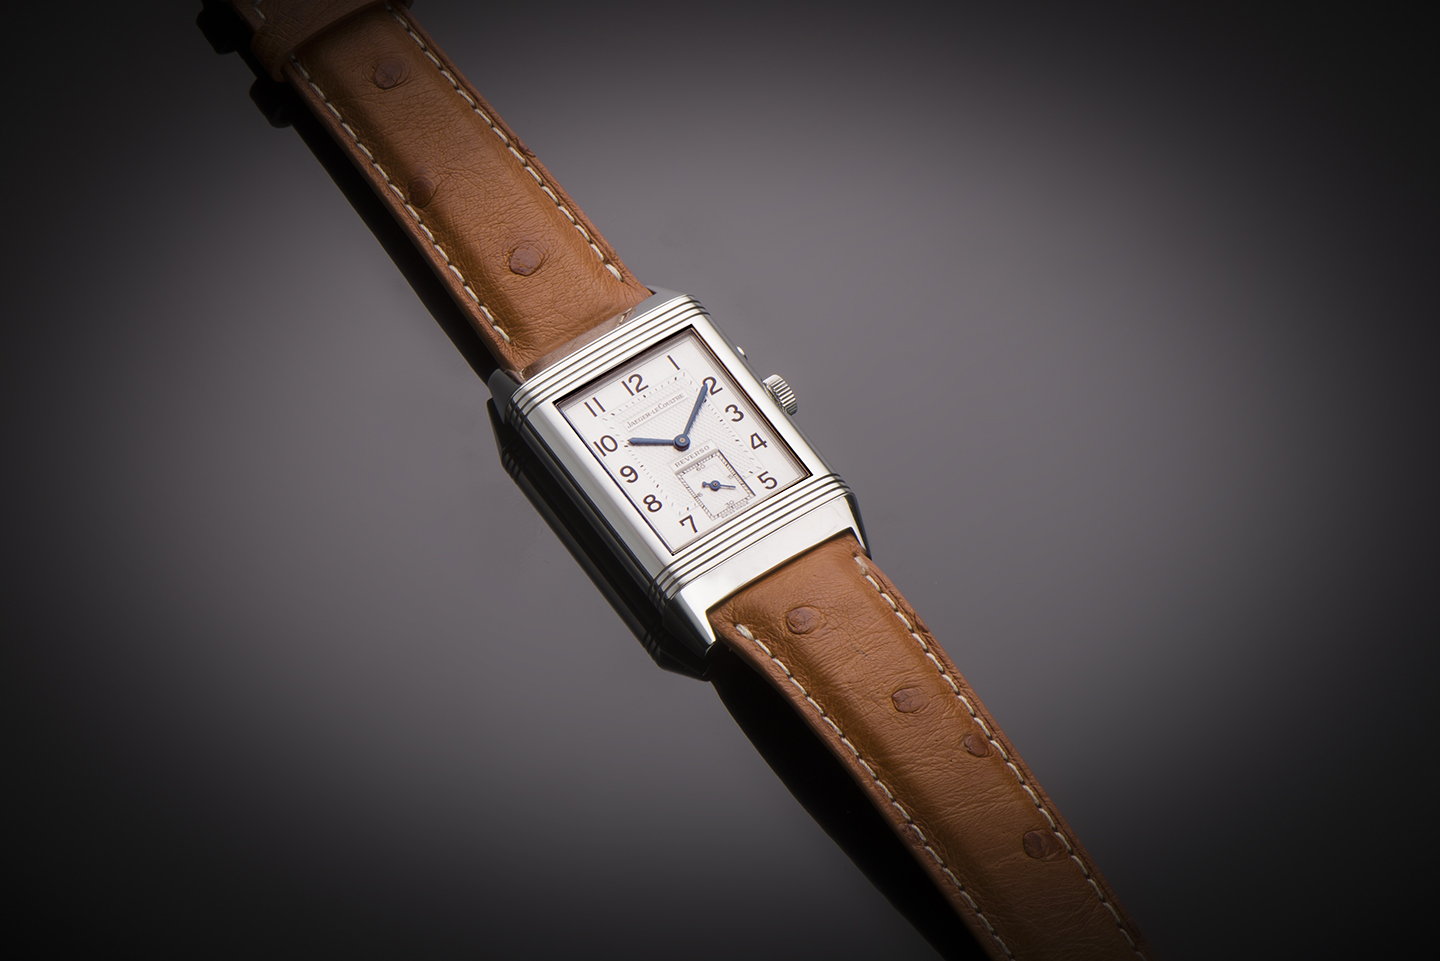 Jaeger LeCoultre Reverso Duoface Night & Day watch-1